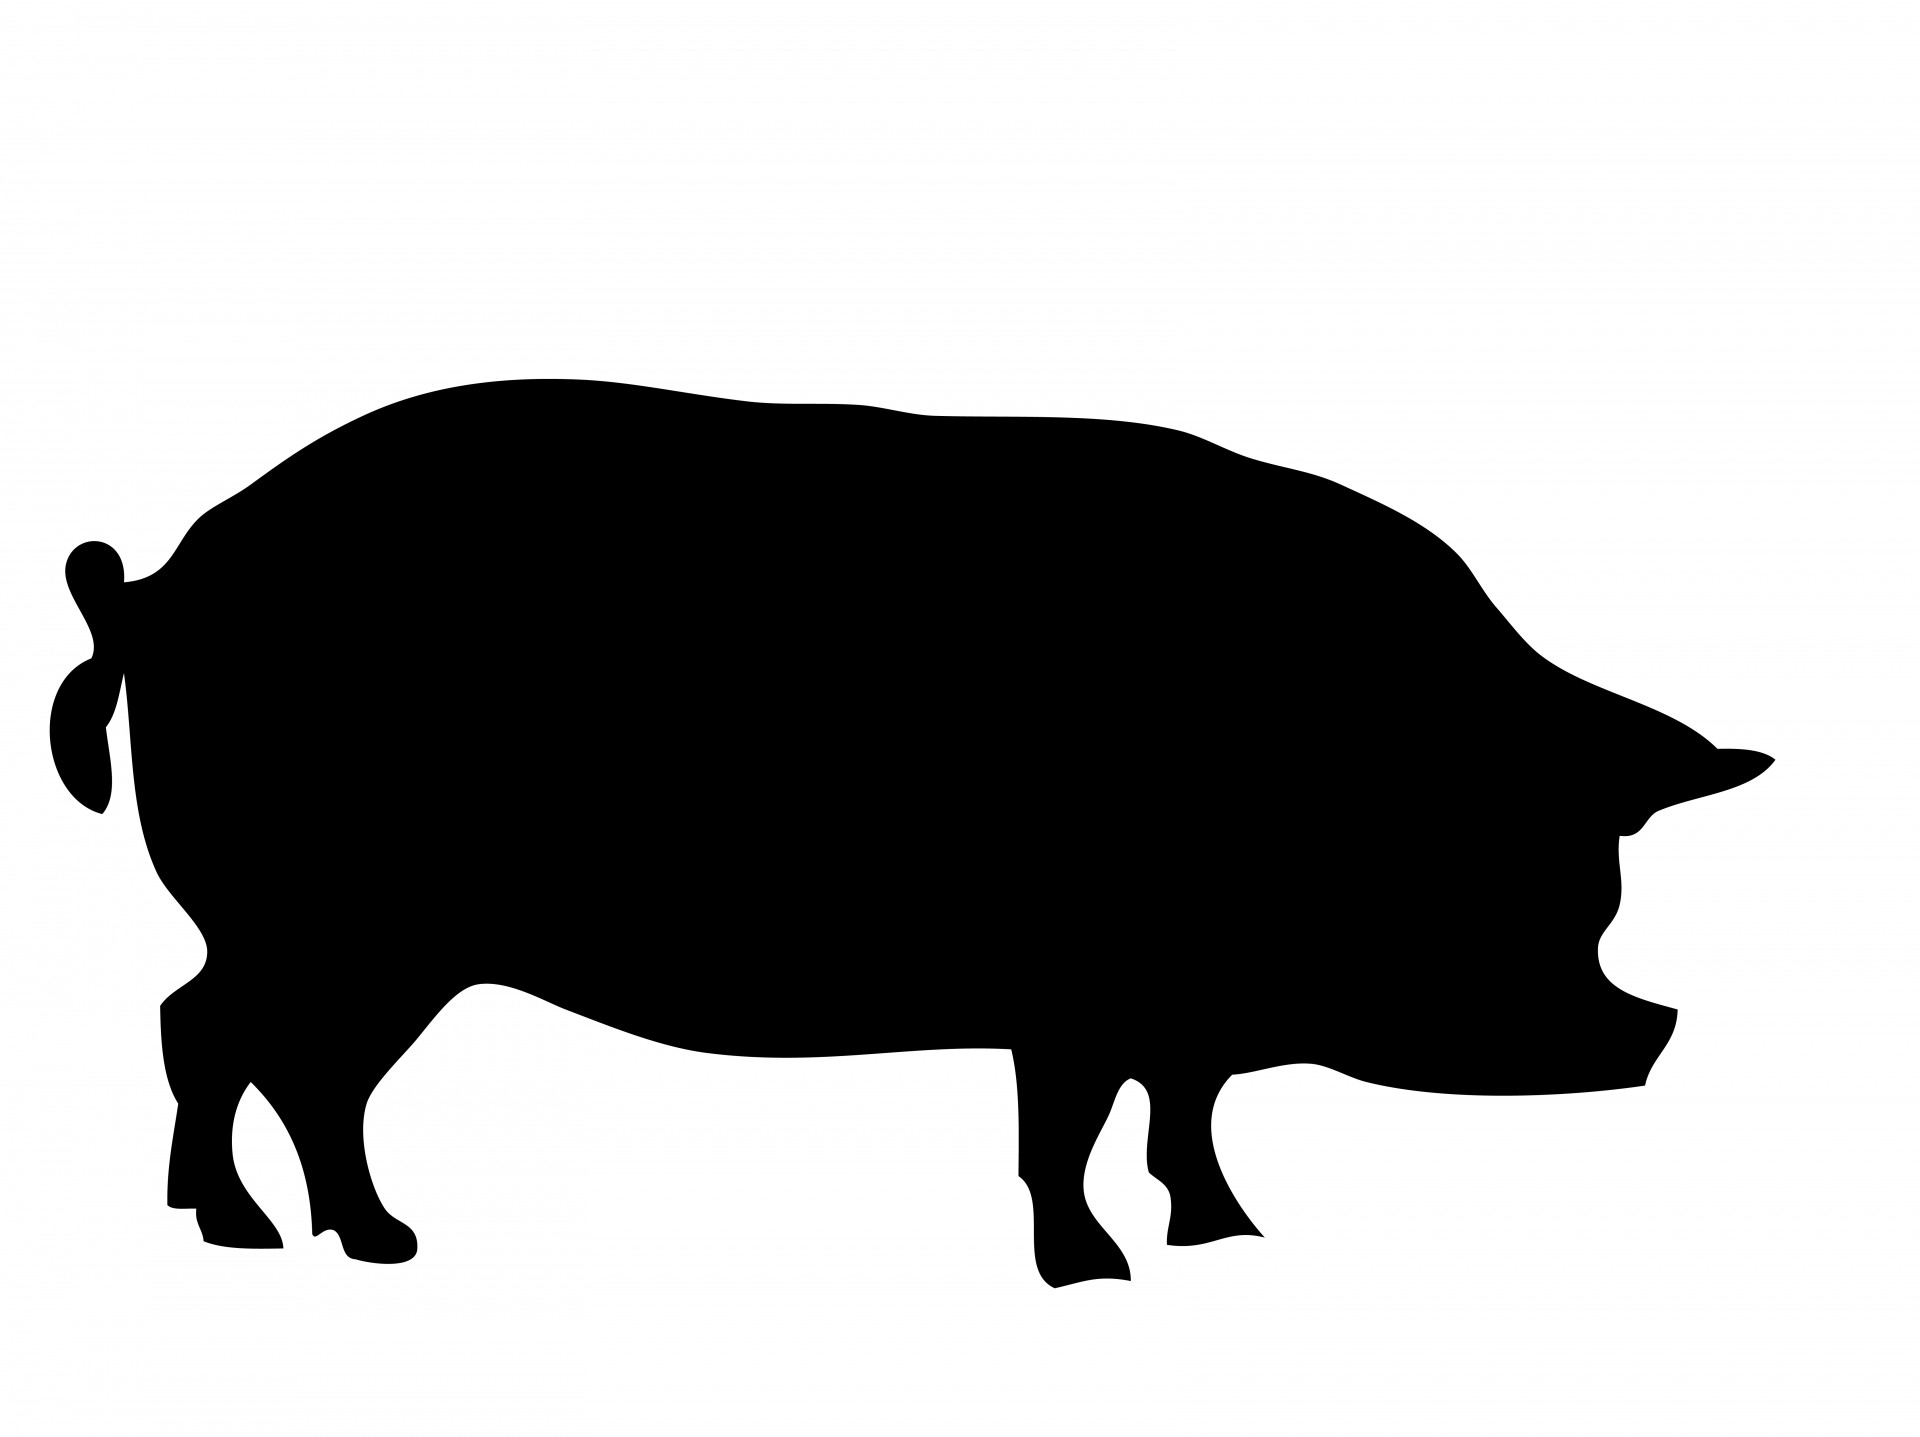 Free Pig Silhouette, Download Free Clip Art, Free Clip Art on.